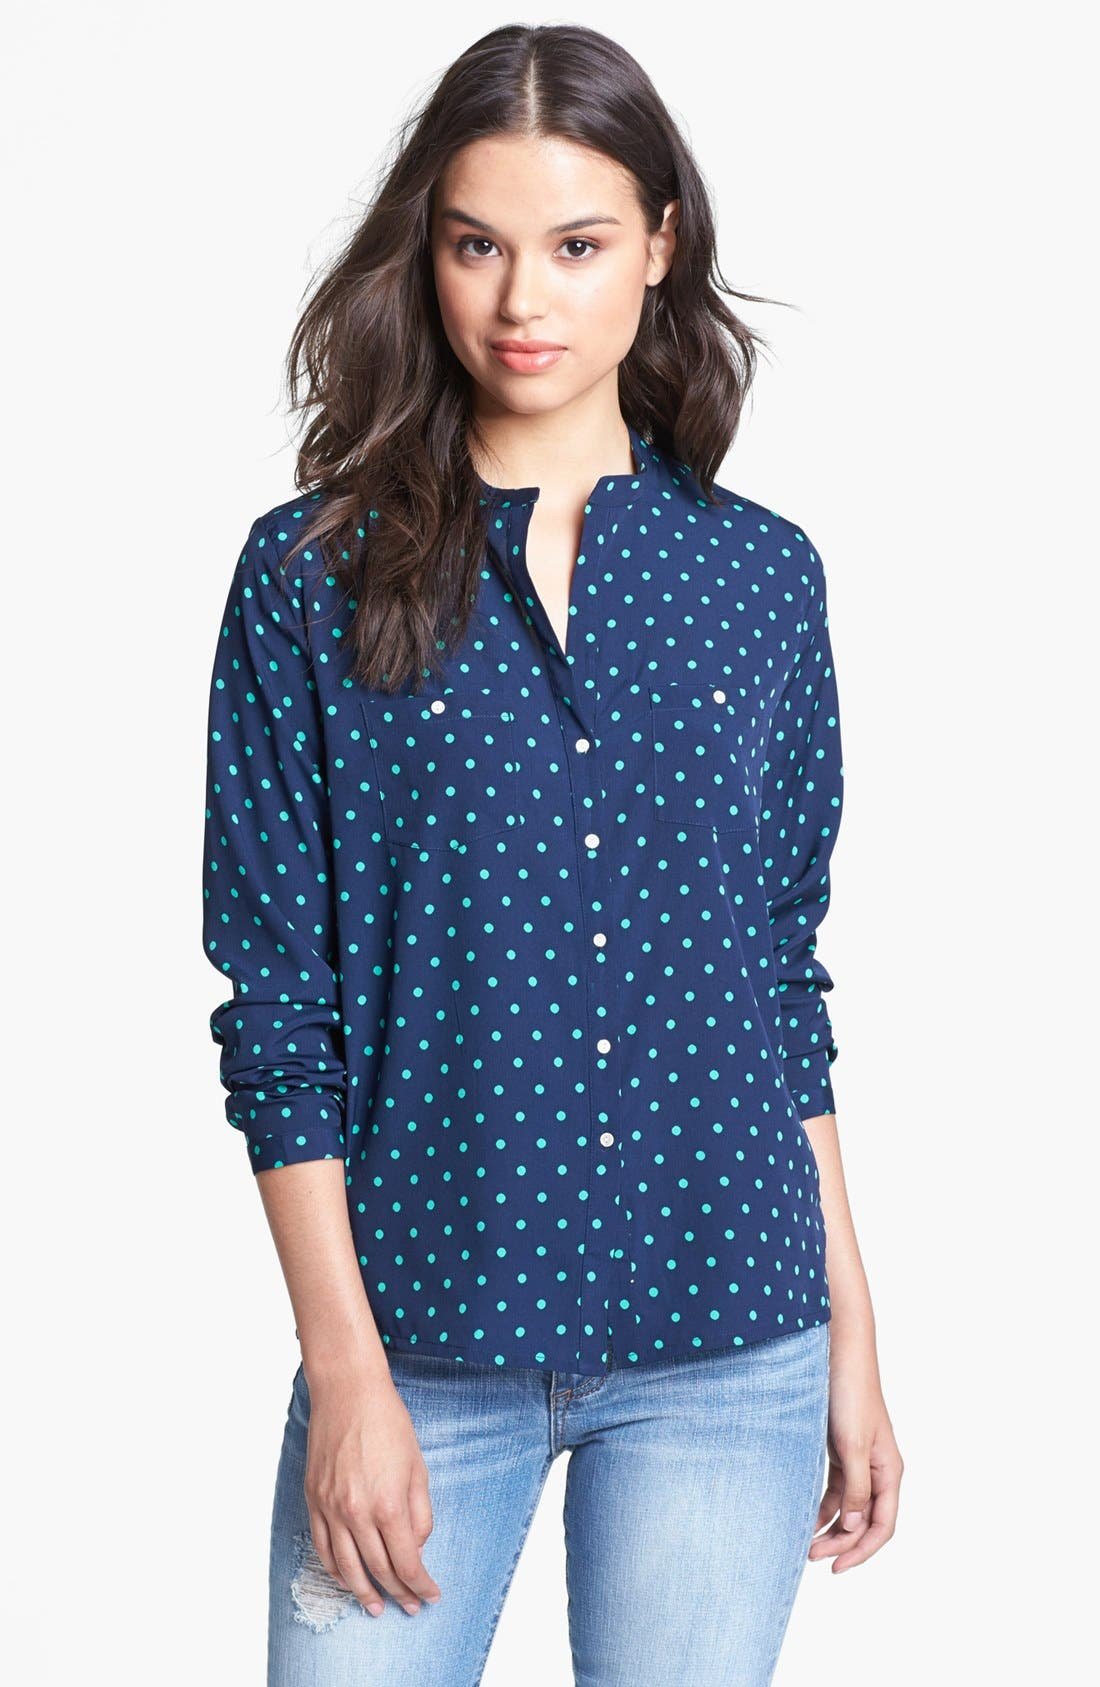 Main Image - KUT from the Kloth 'Sabina' Polka Dot Shirt